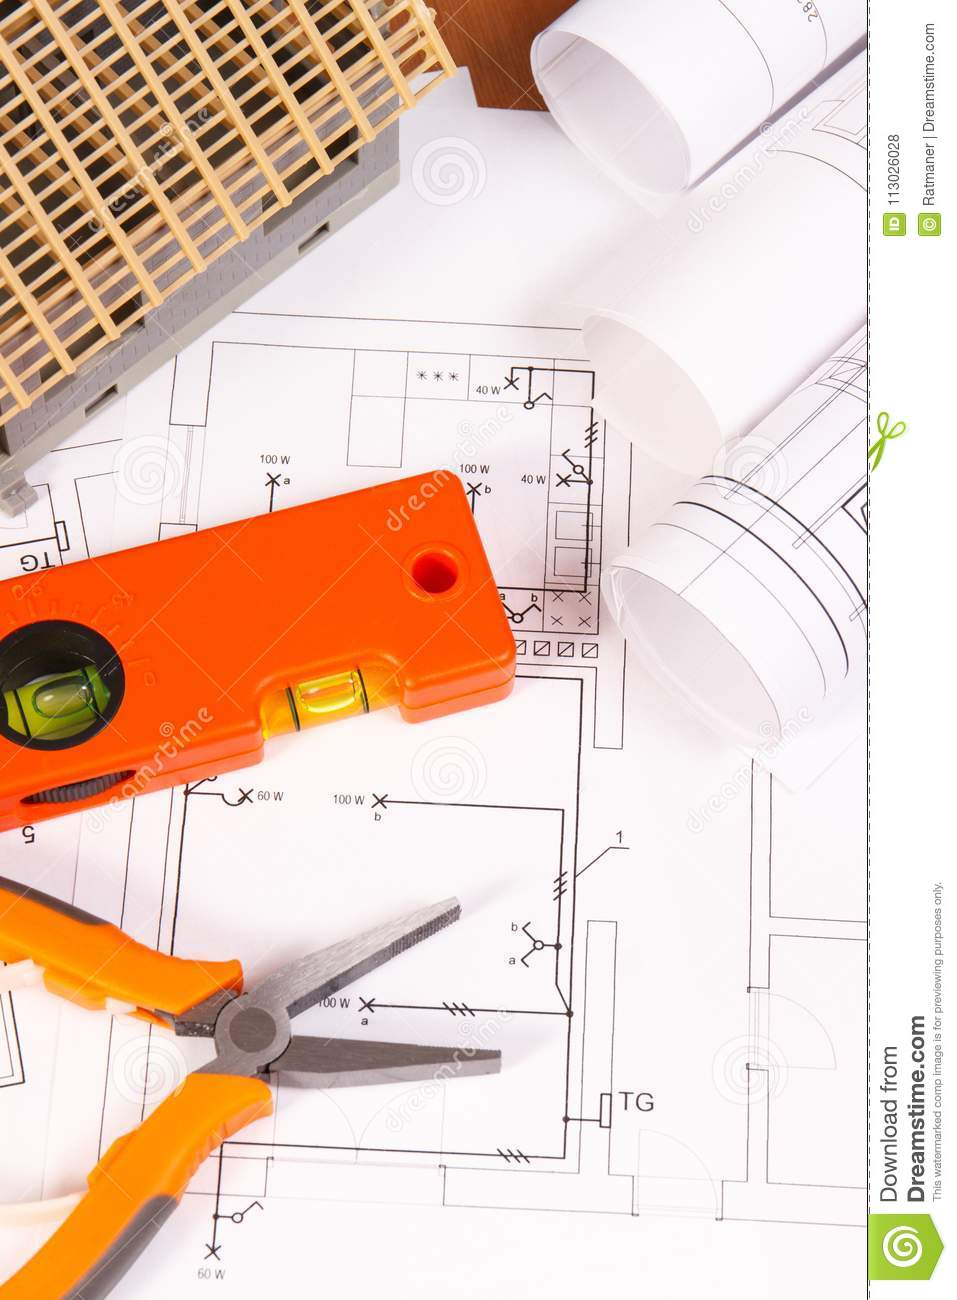 Electrical Diagrams Or Drawings Work Tools And House Under Schematic For Construction Building Home Concept